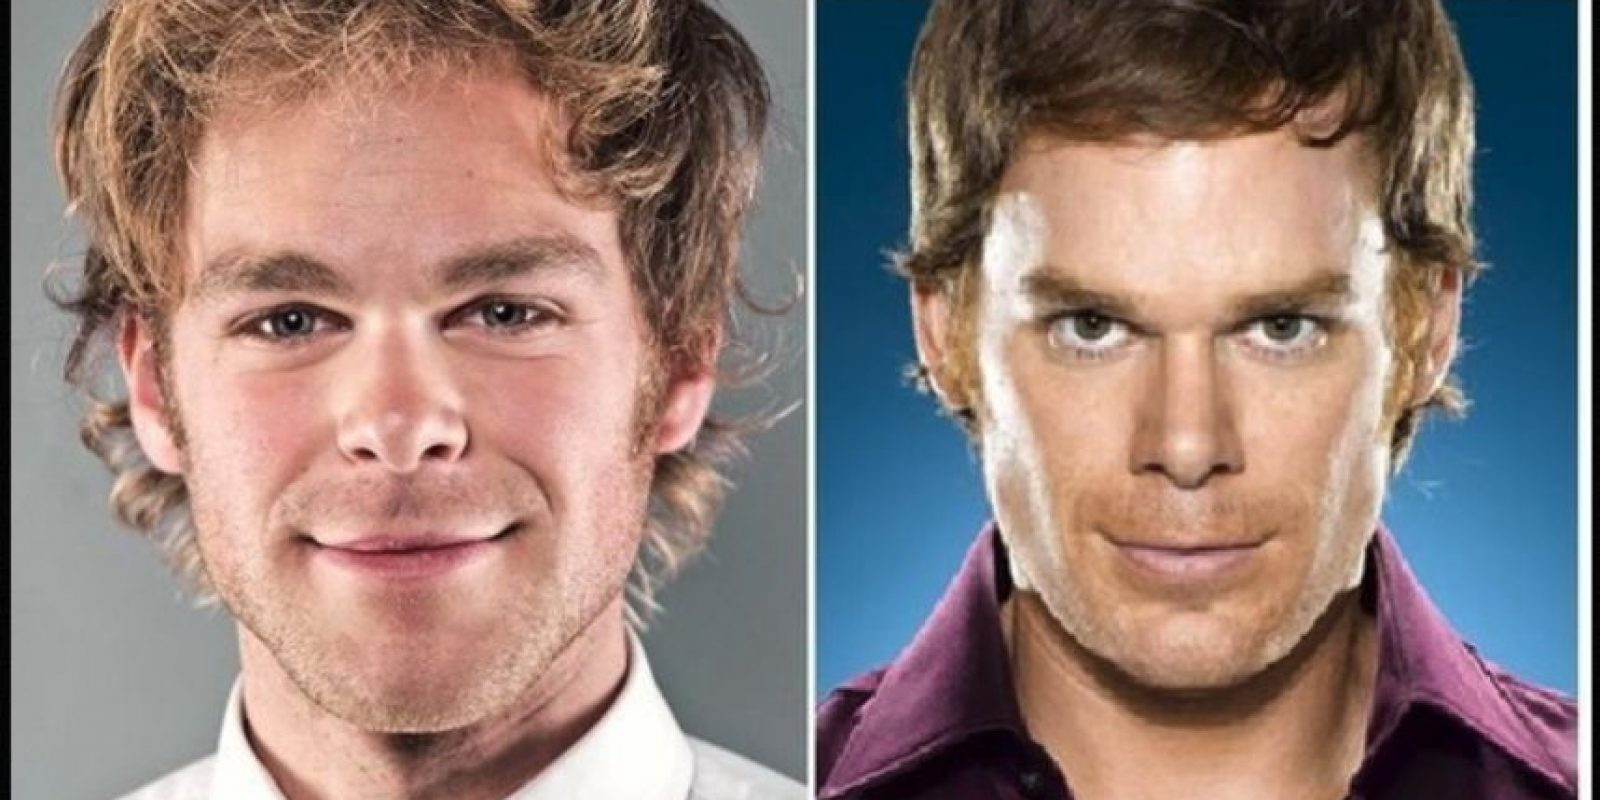 Igual a Michael C. Hall Foto: Reddit/Getty